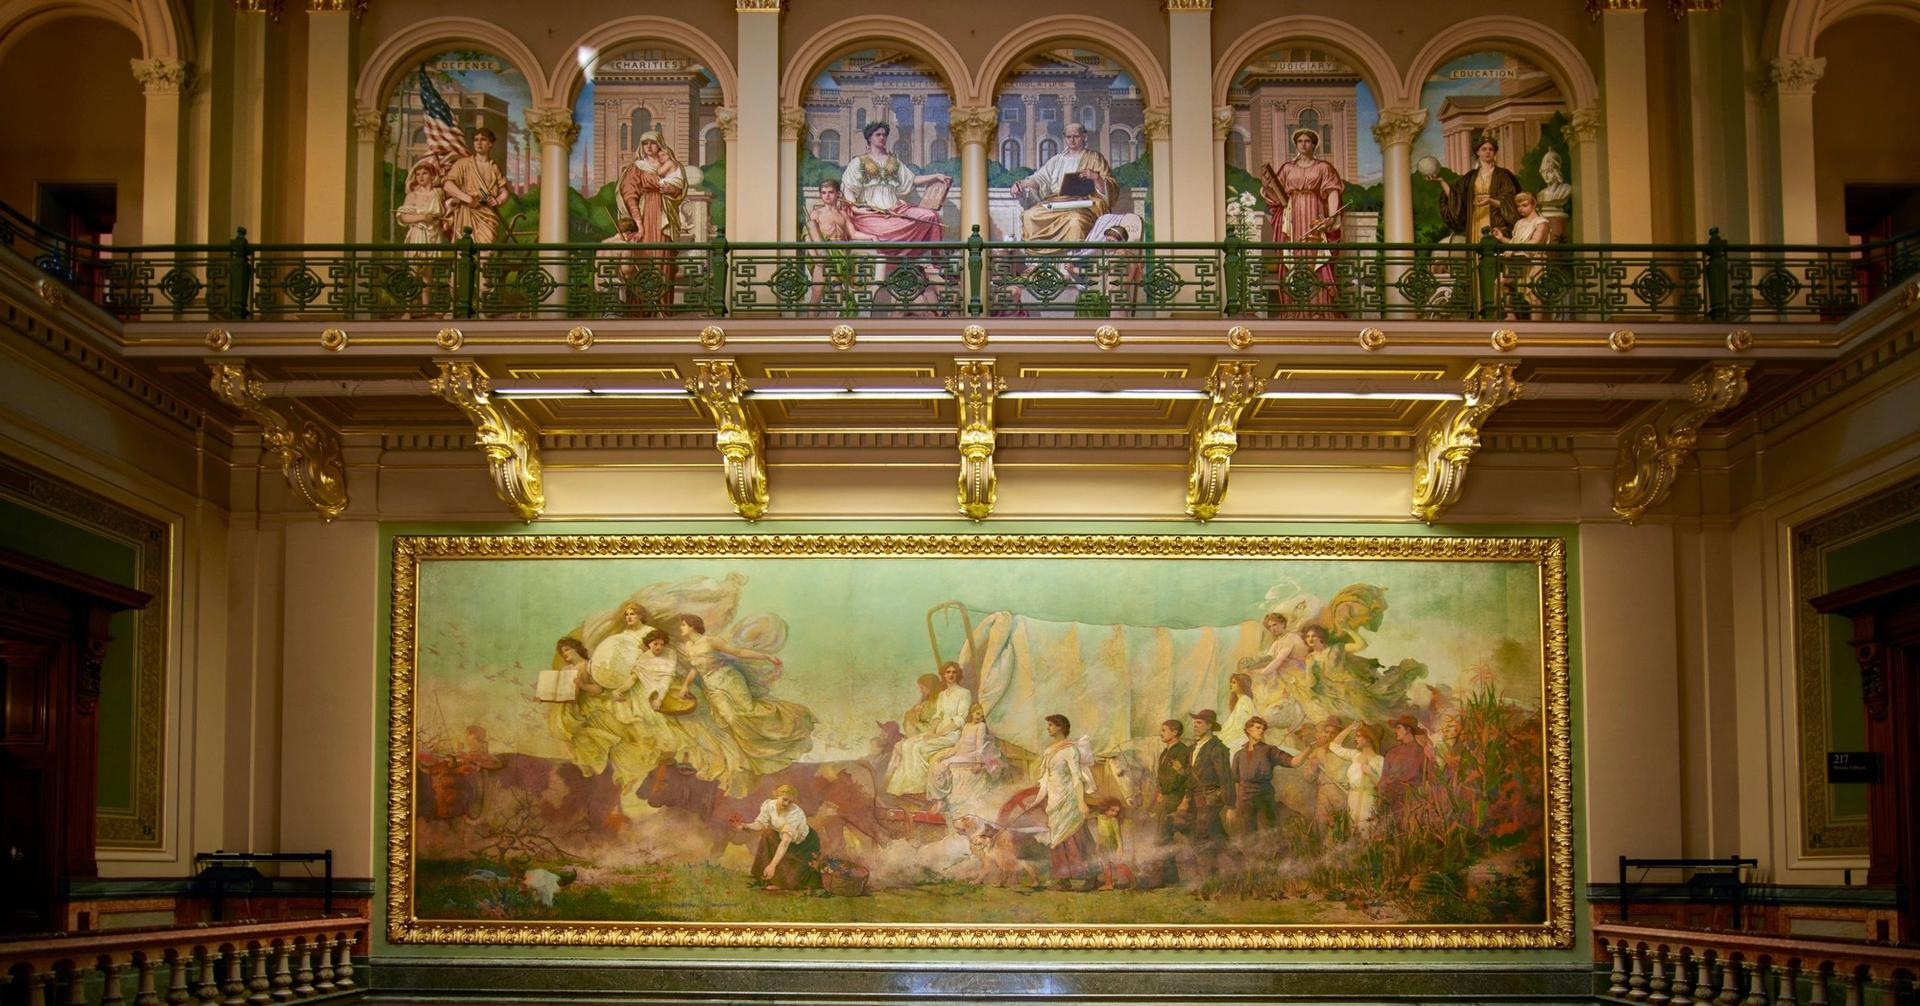 The mural Westward, at the Iowa State Capitol in Des Moines, by Edwin H. Blashfield, depicts the migration of white settlers Photographs in the Carol M. Highsmith Archive, Library of Congress, Prints and Photographs Division